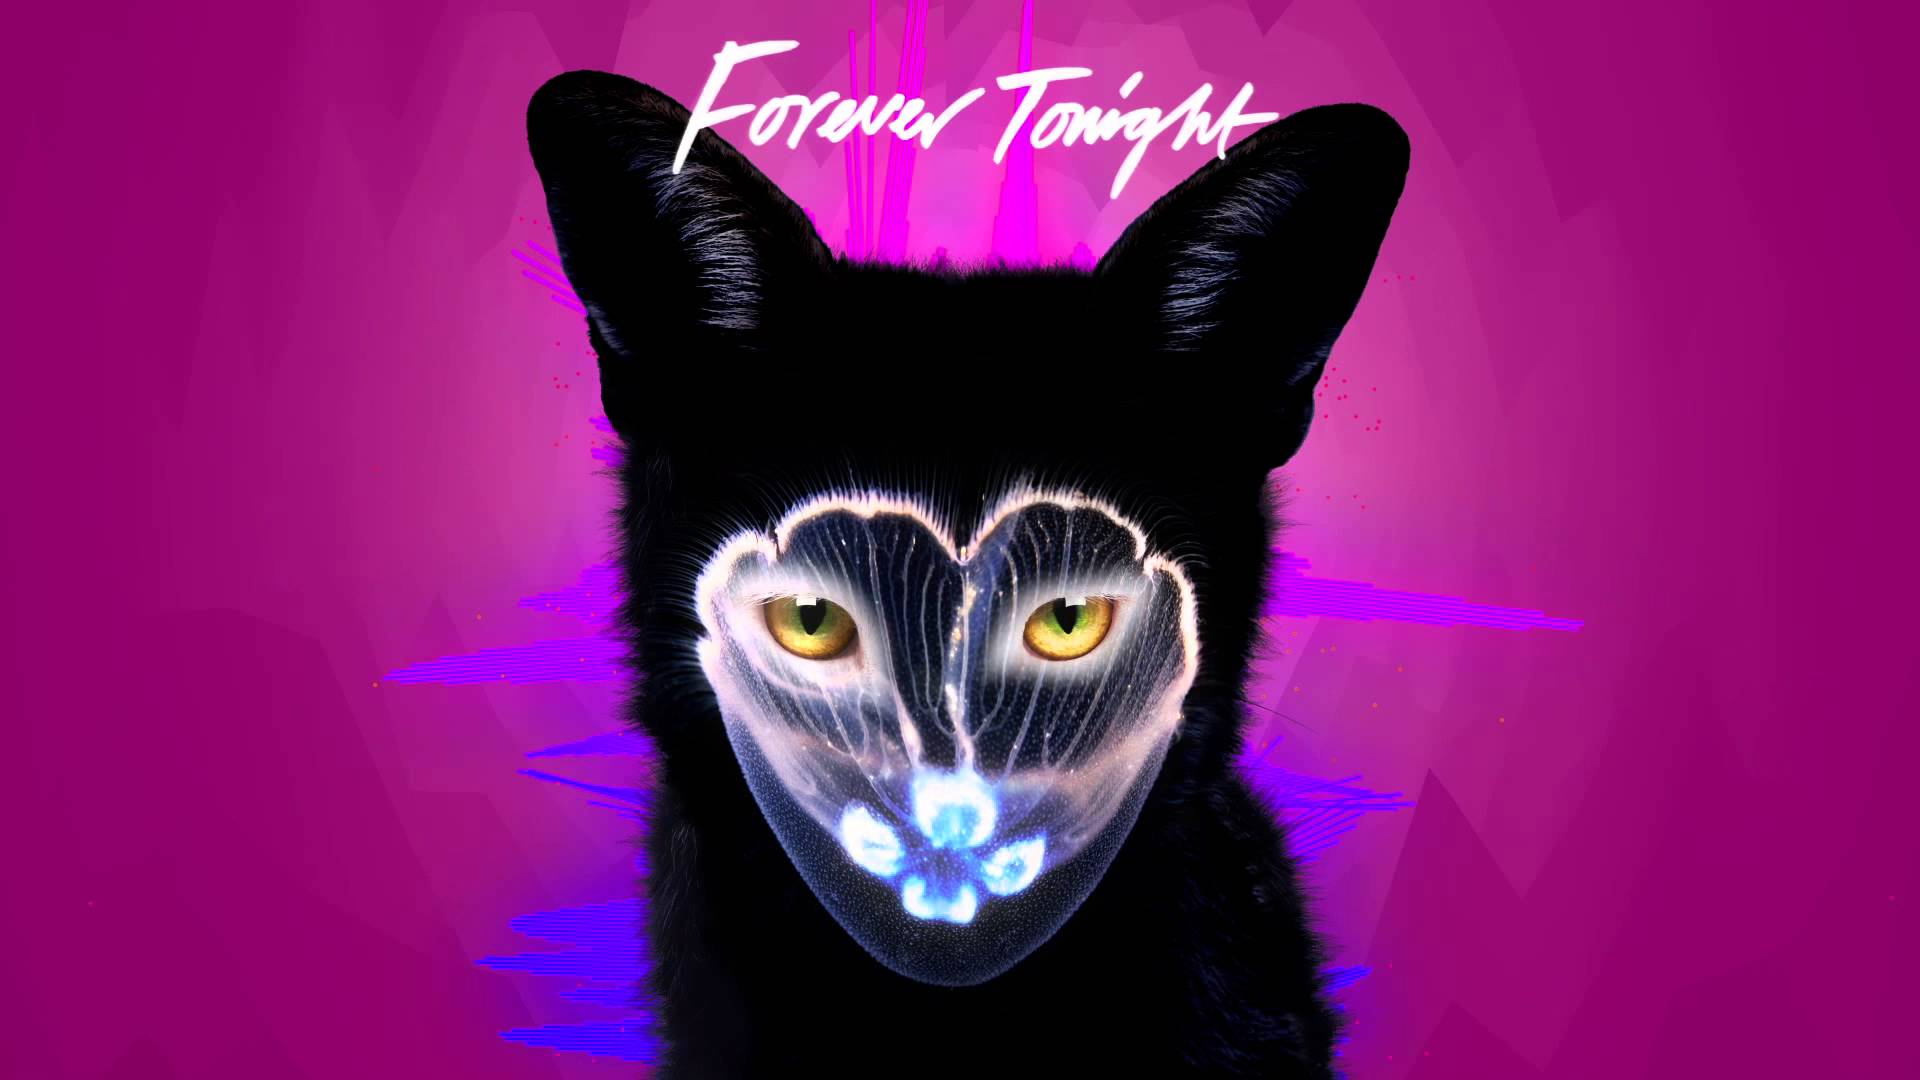 Forever Tonight by Galantis | This Is My Jam